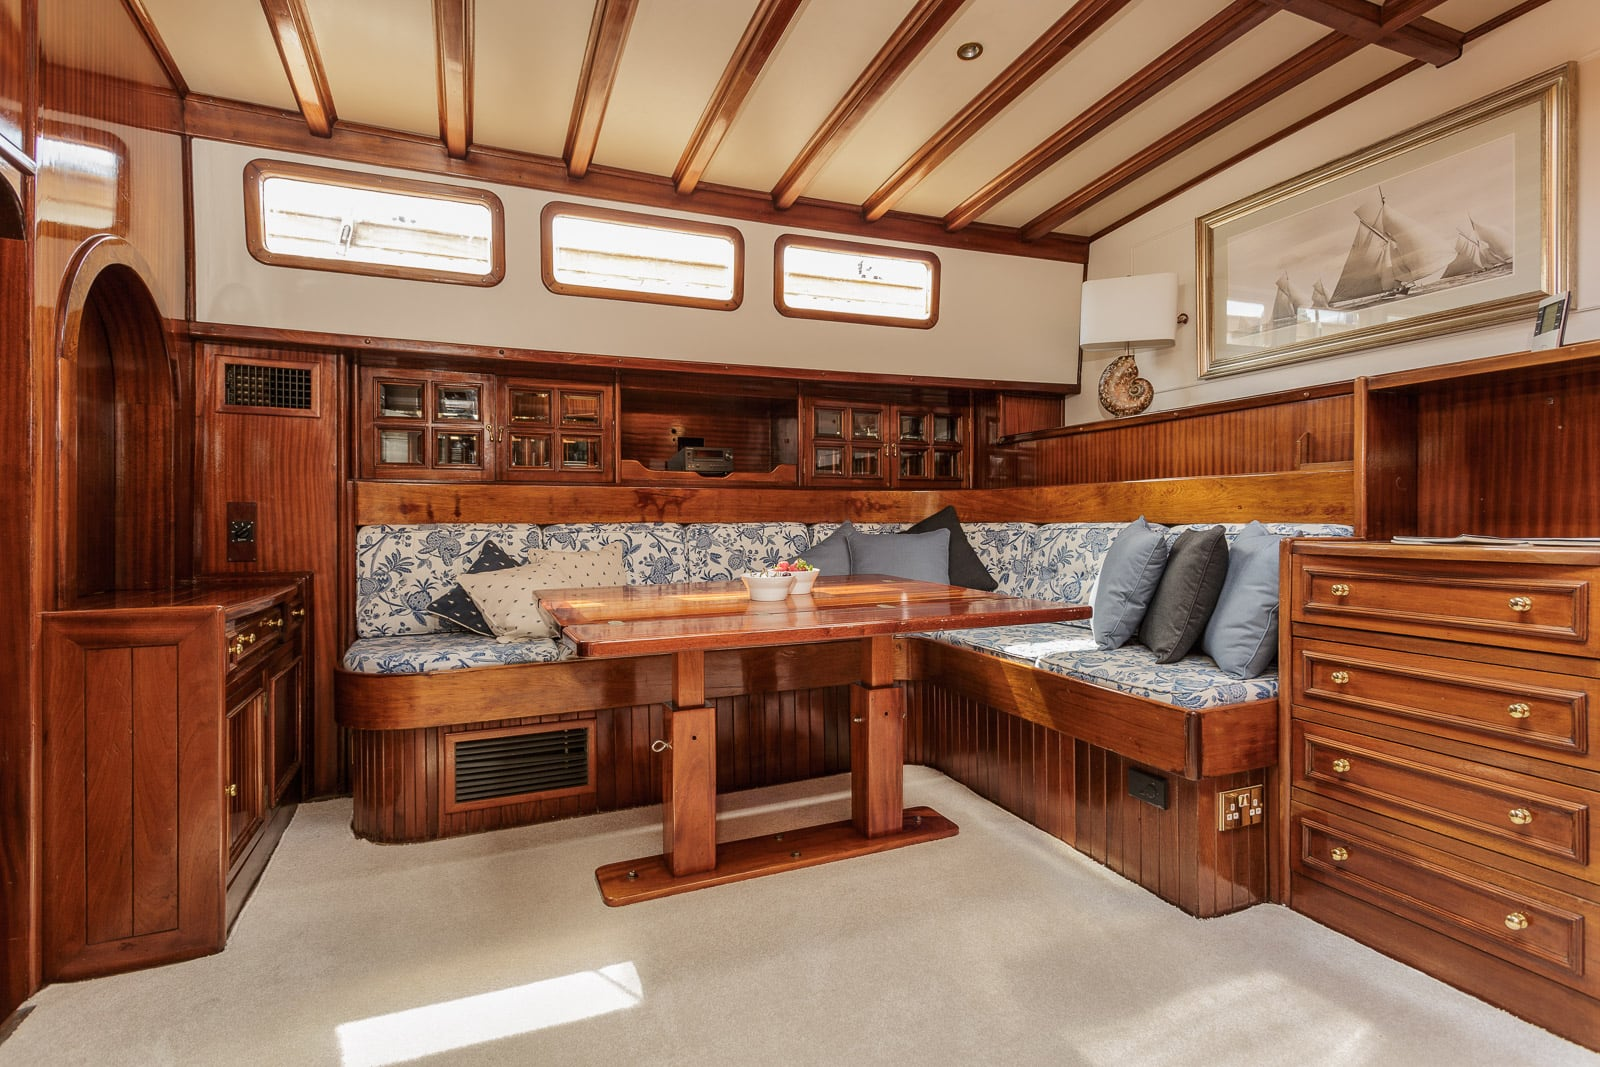 Below deck view of a wooden schooner yacht with adjustable height table, seating and plan chest fashioned in dark wood throughout